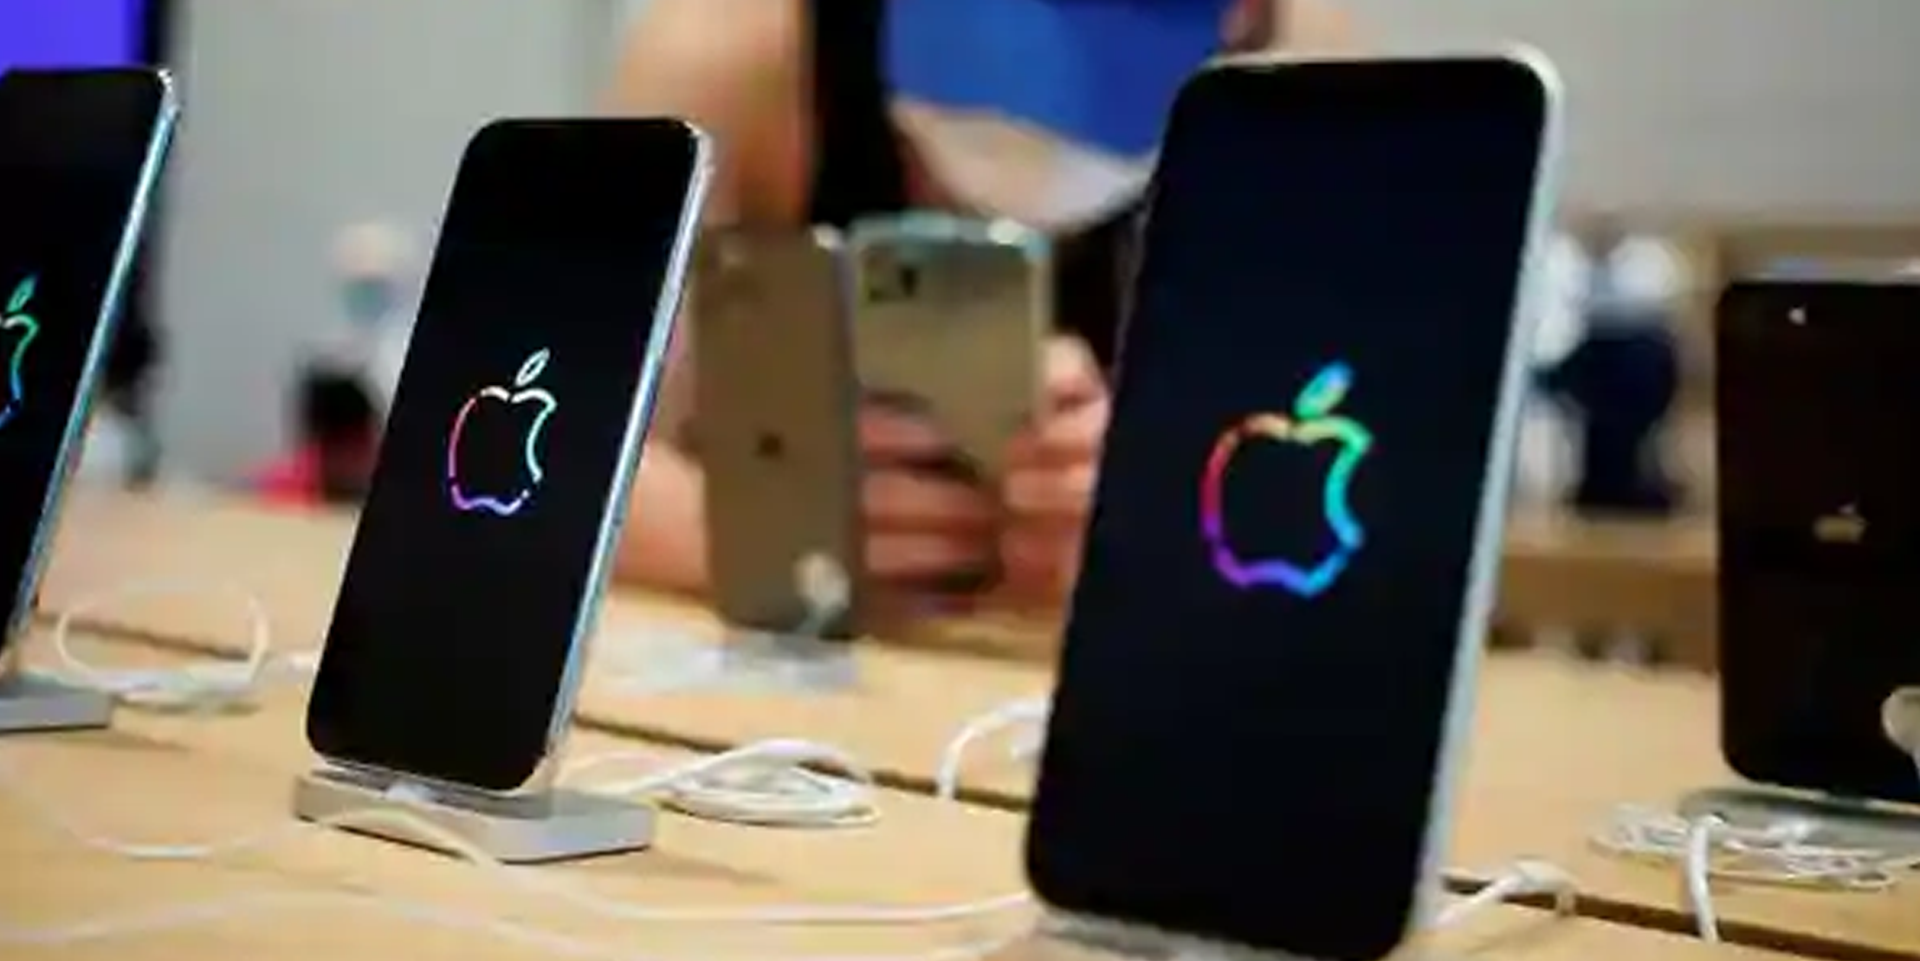 Not in China but Chennai. Apple starts manufacturing of iPhone 11 in India